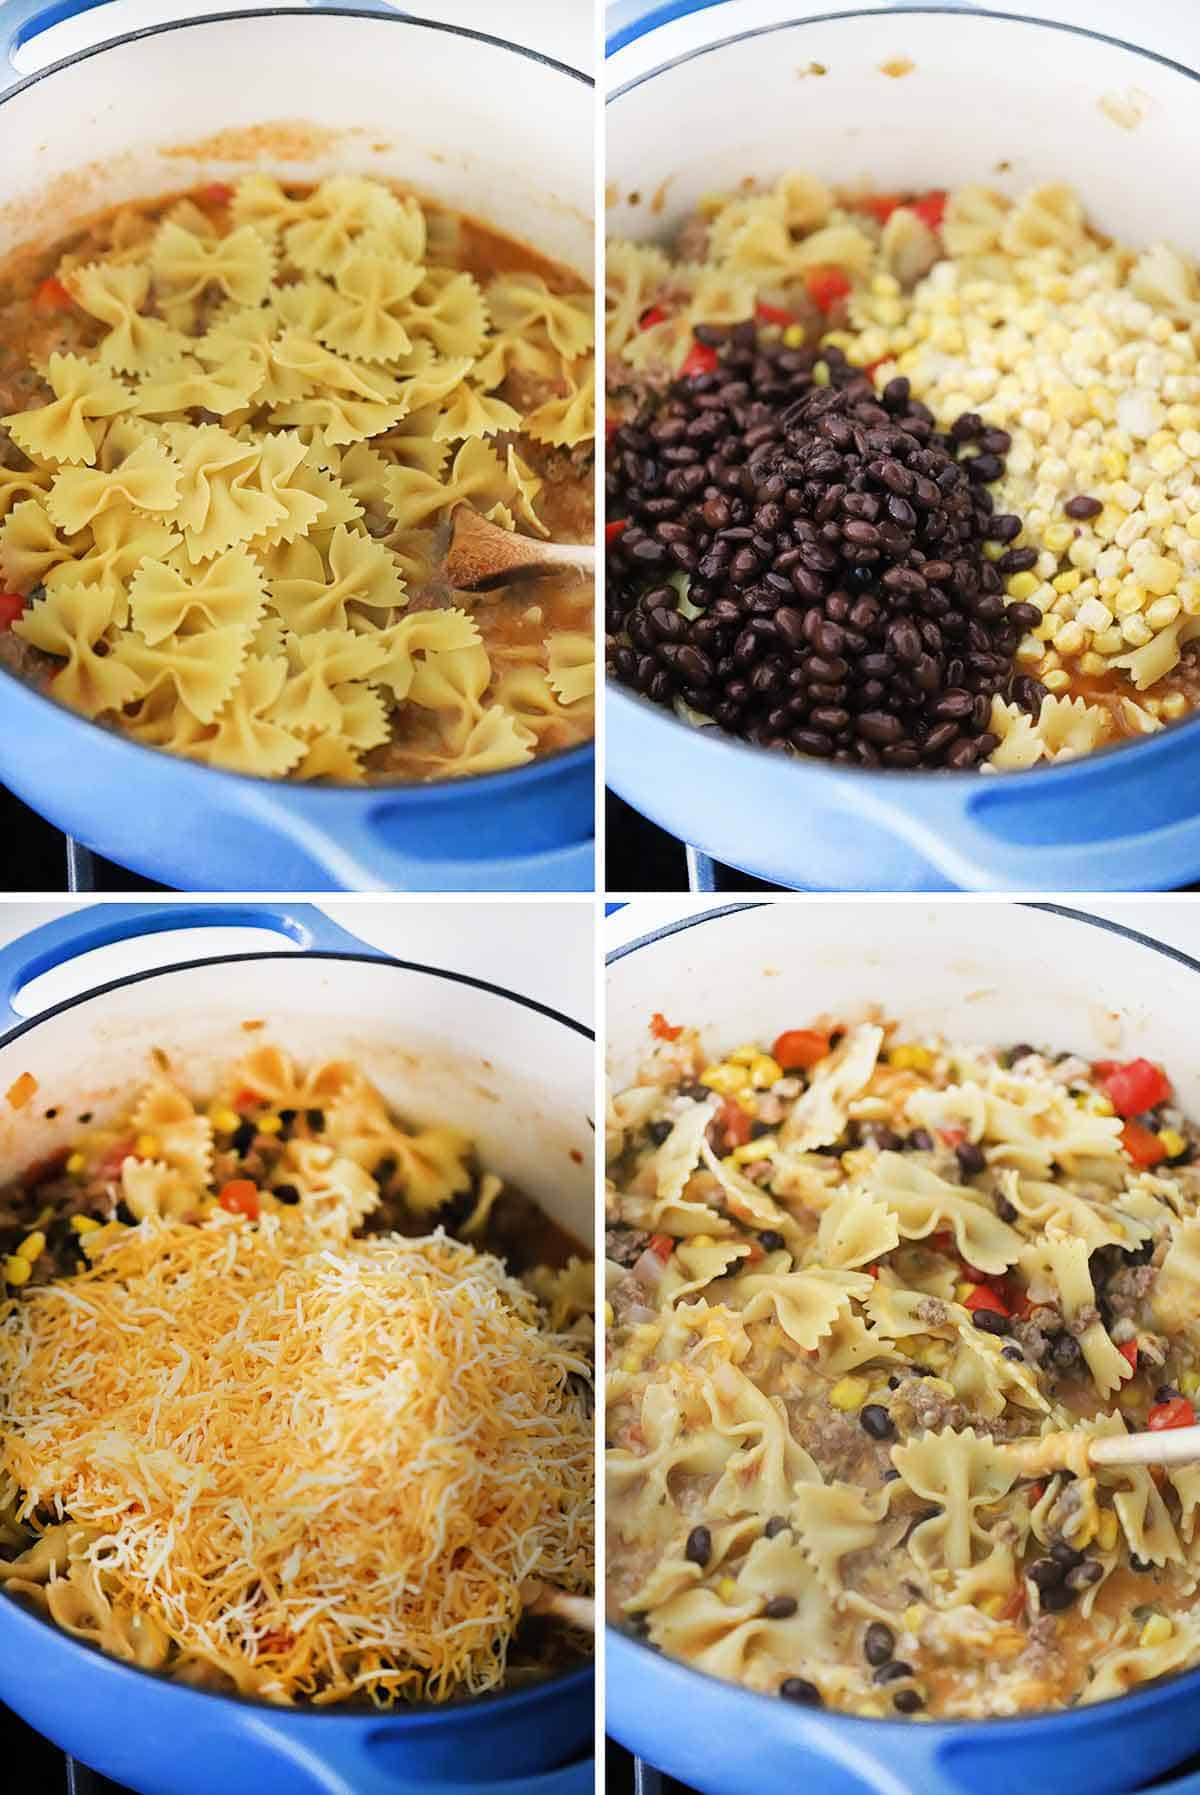 Process collage showing adding dry pasta, black beans, corn, and cheese to make taco pasta.